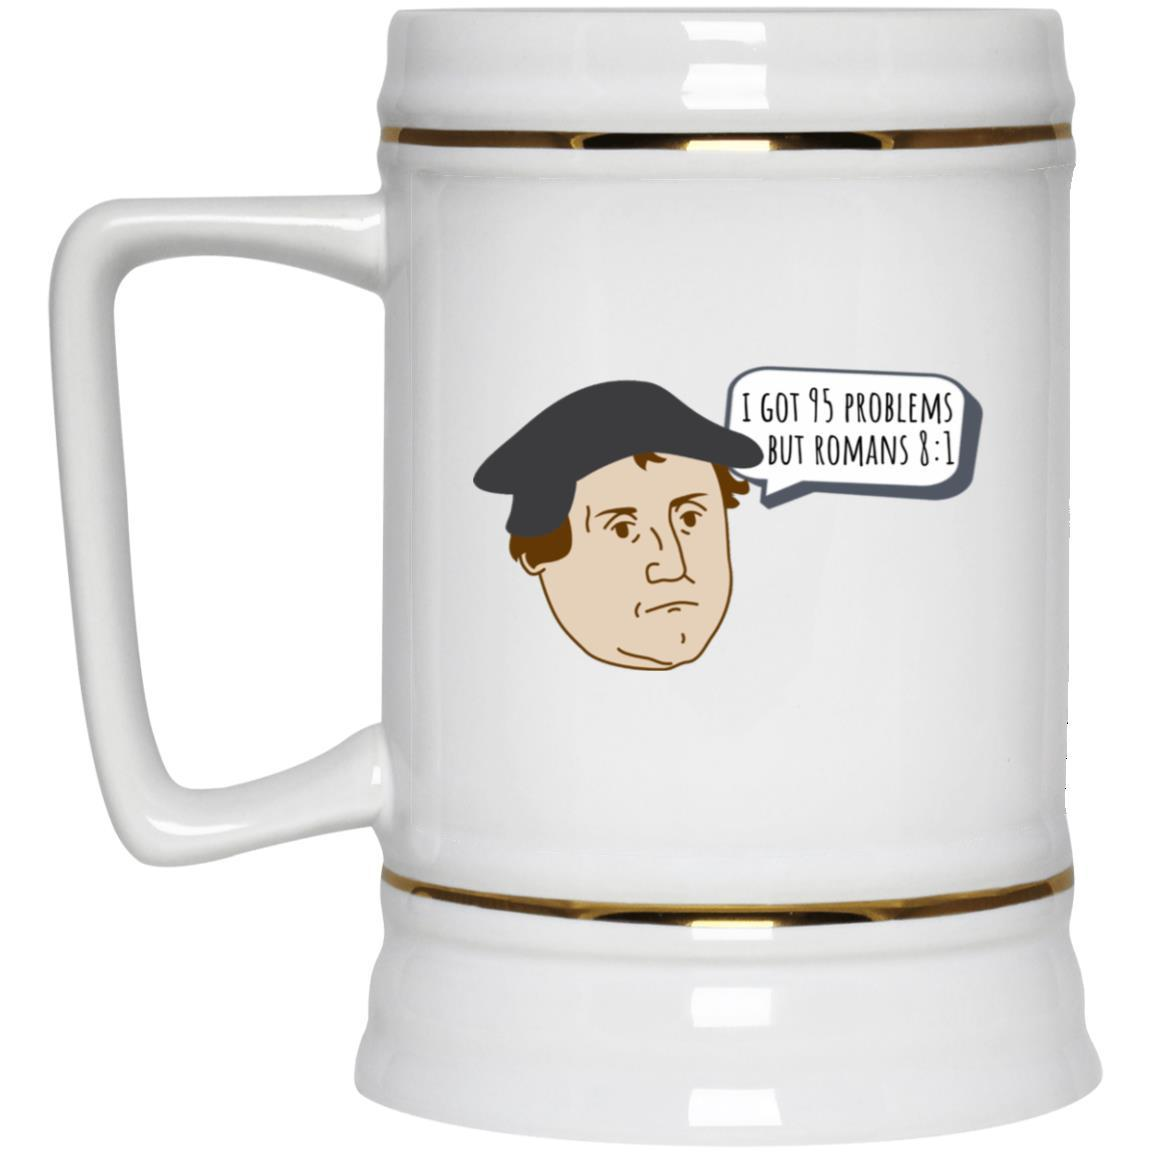 I Got 95 Problems (22oz Beer Stein) - SDG Clothing